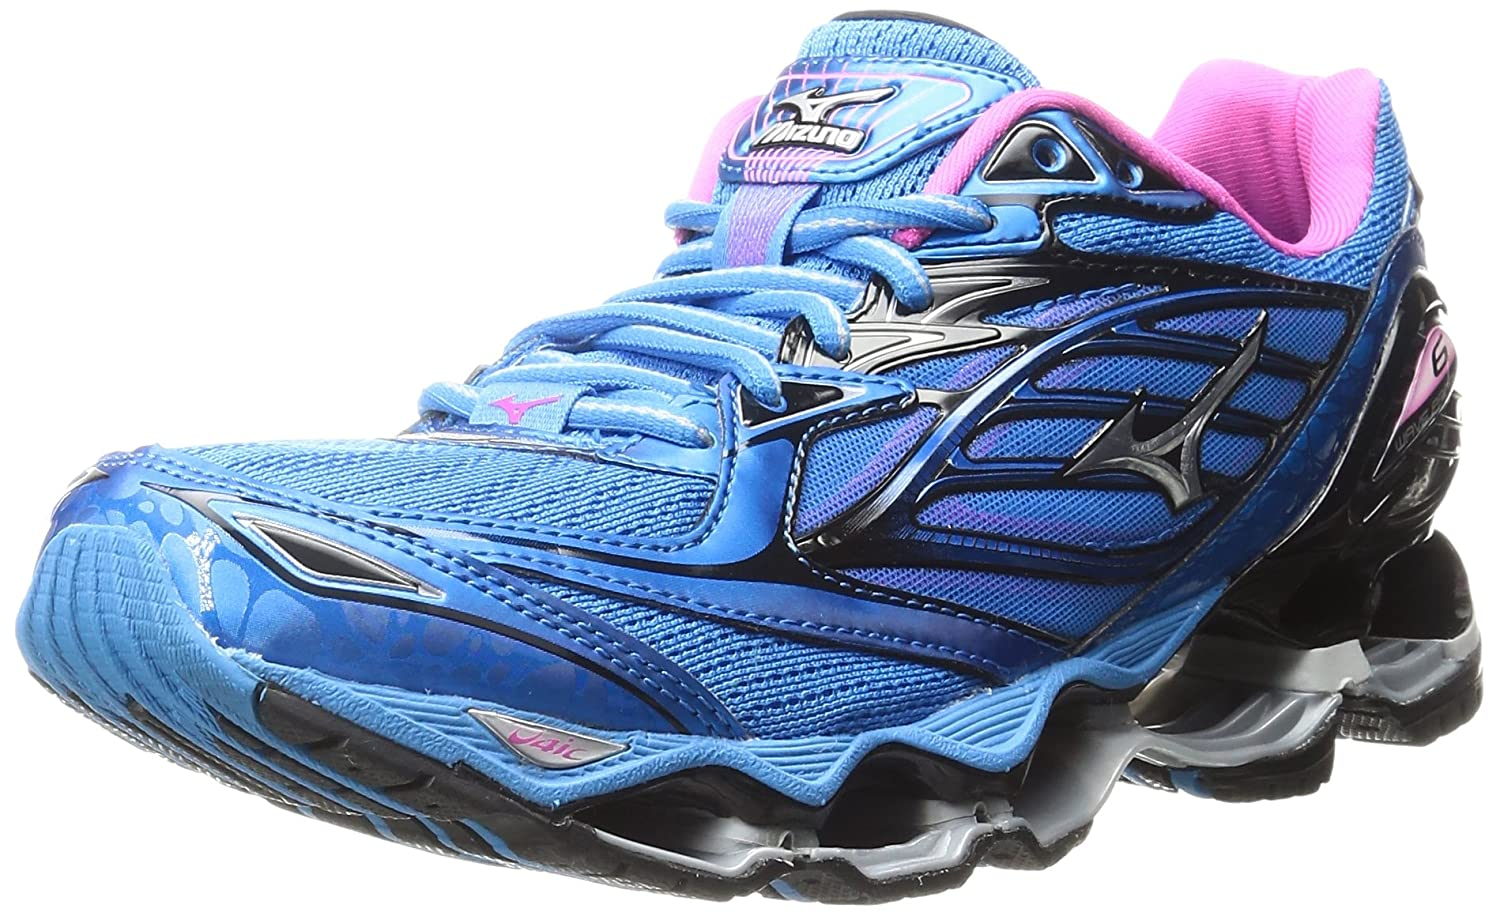 Mizuno Women's Wave Prophecy 6 Running Shoe B01H4X9IZS 9 B(M) US|Diva Blue-silver